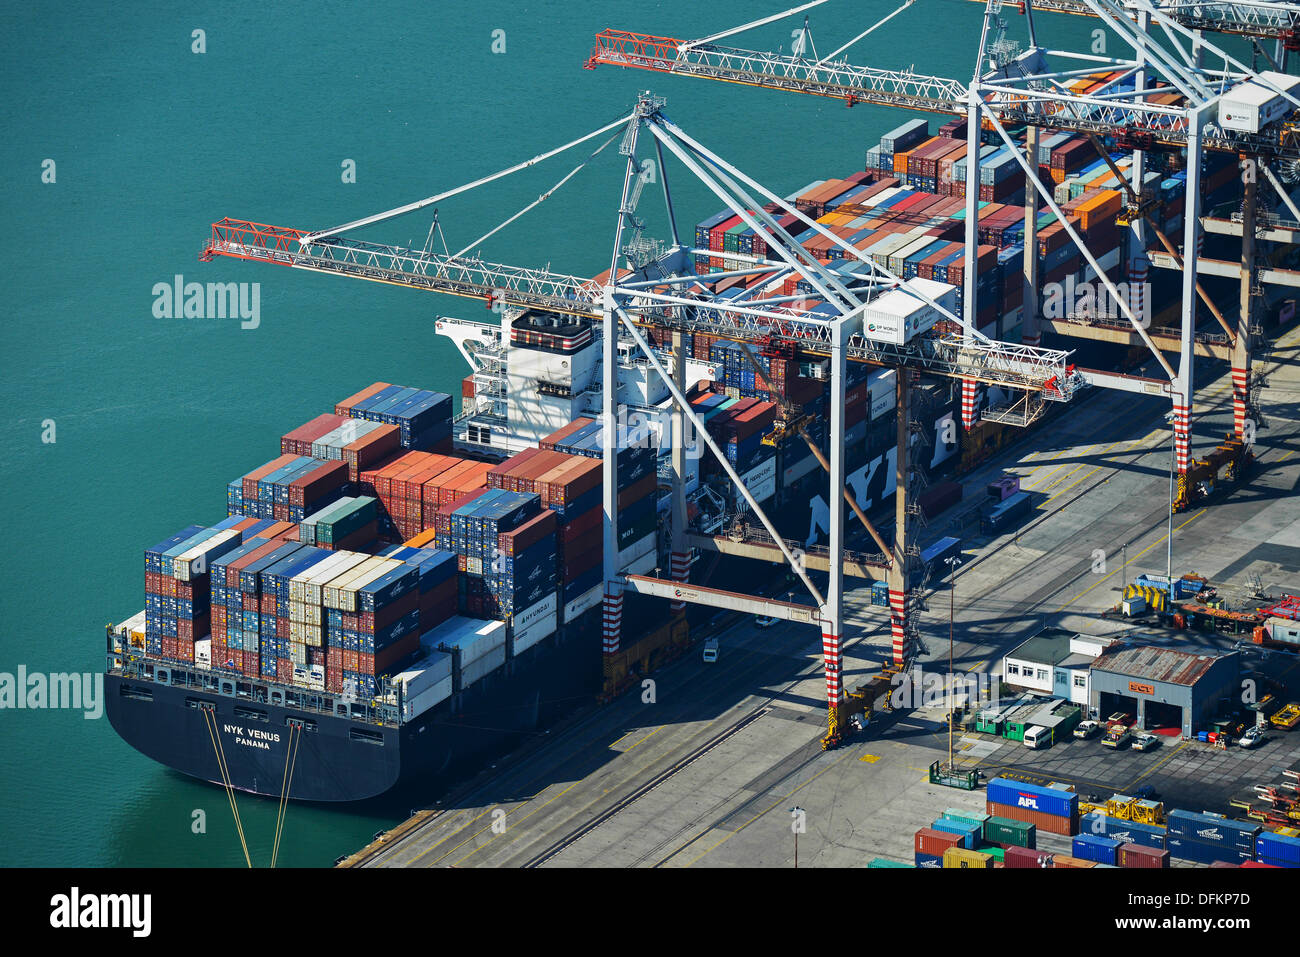 Aerial photograph of a Ship at Southampton Docks - Stock Image